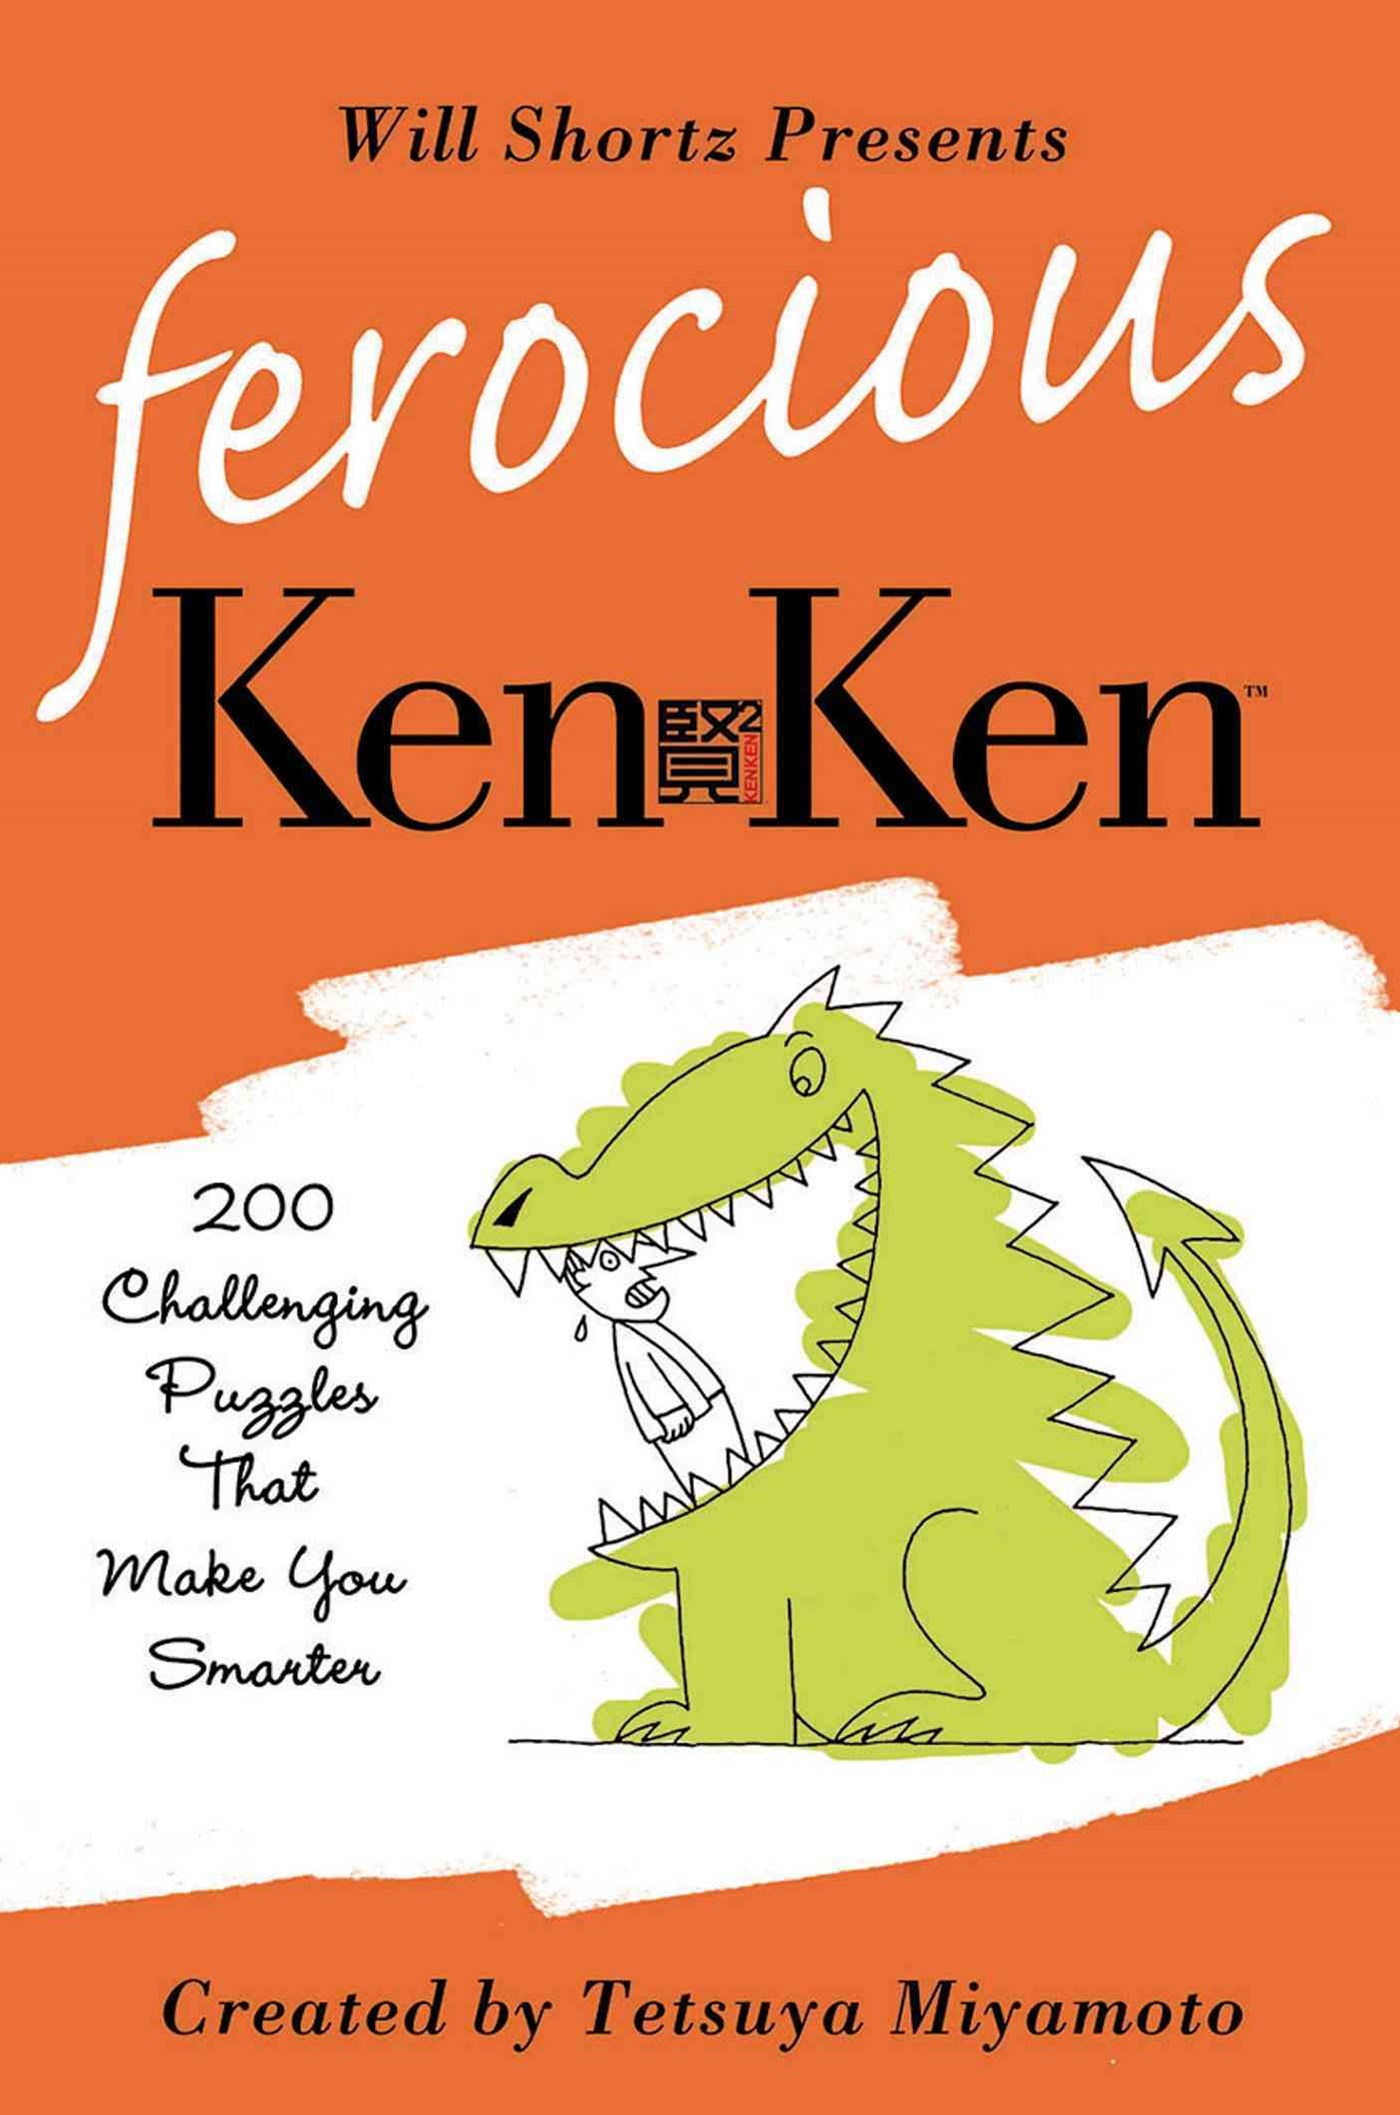 Will Shortz Presents Ferocious KenKen